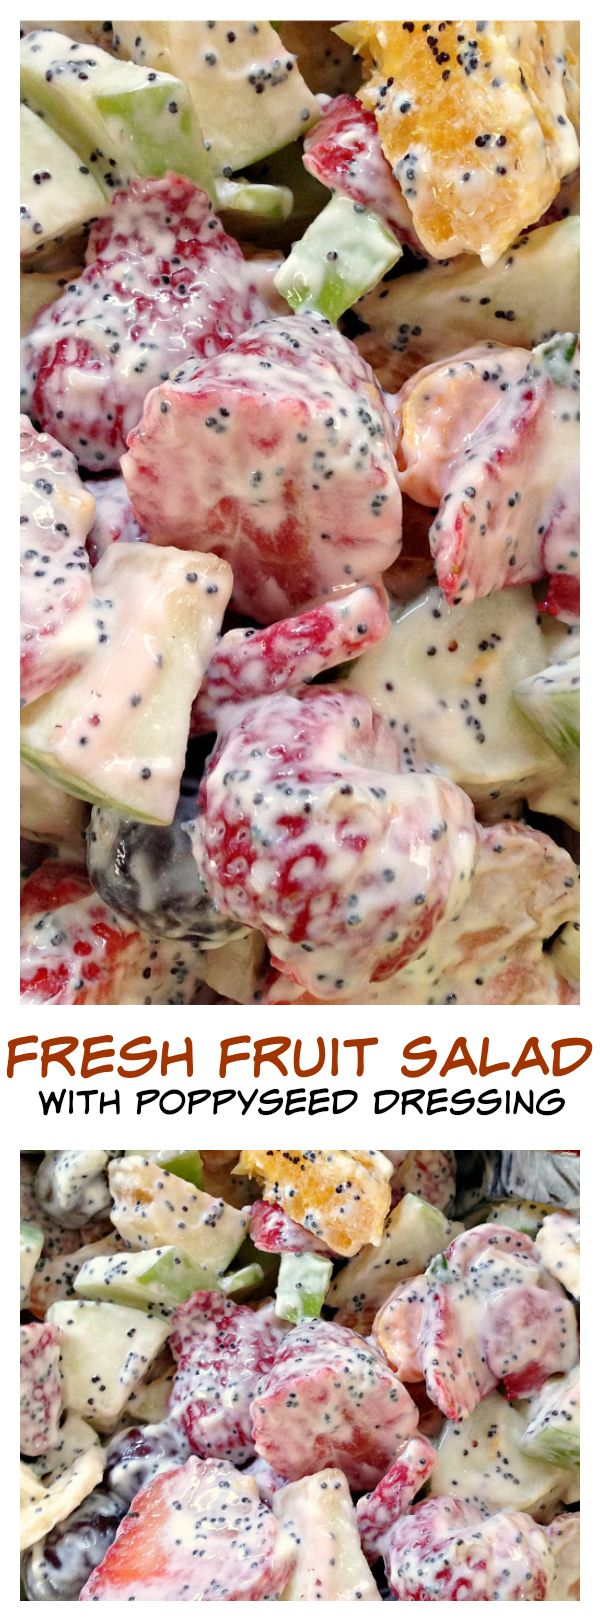 Fresh Fruit Salad with Poppyseed Dressing Made with 1 small container triple zero strawberry Greek yogurt -nh